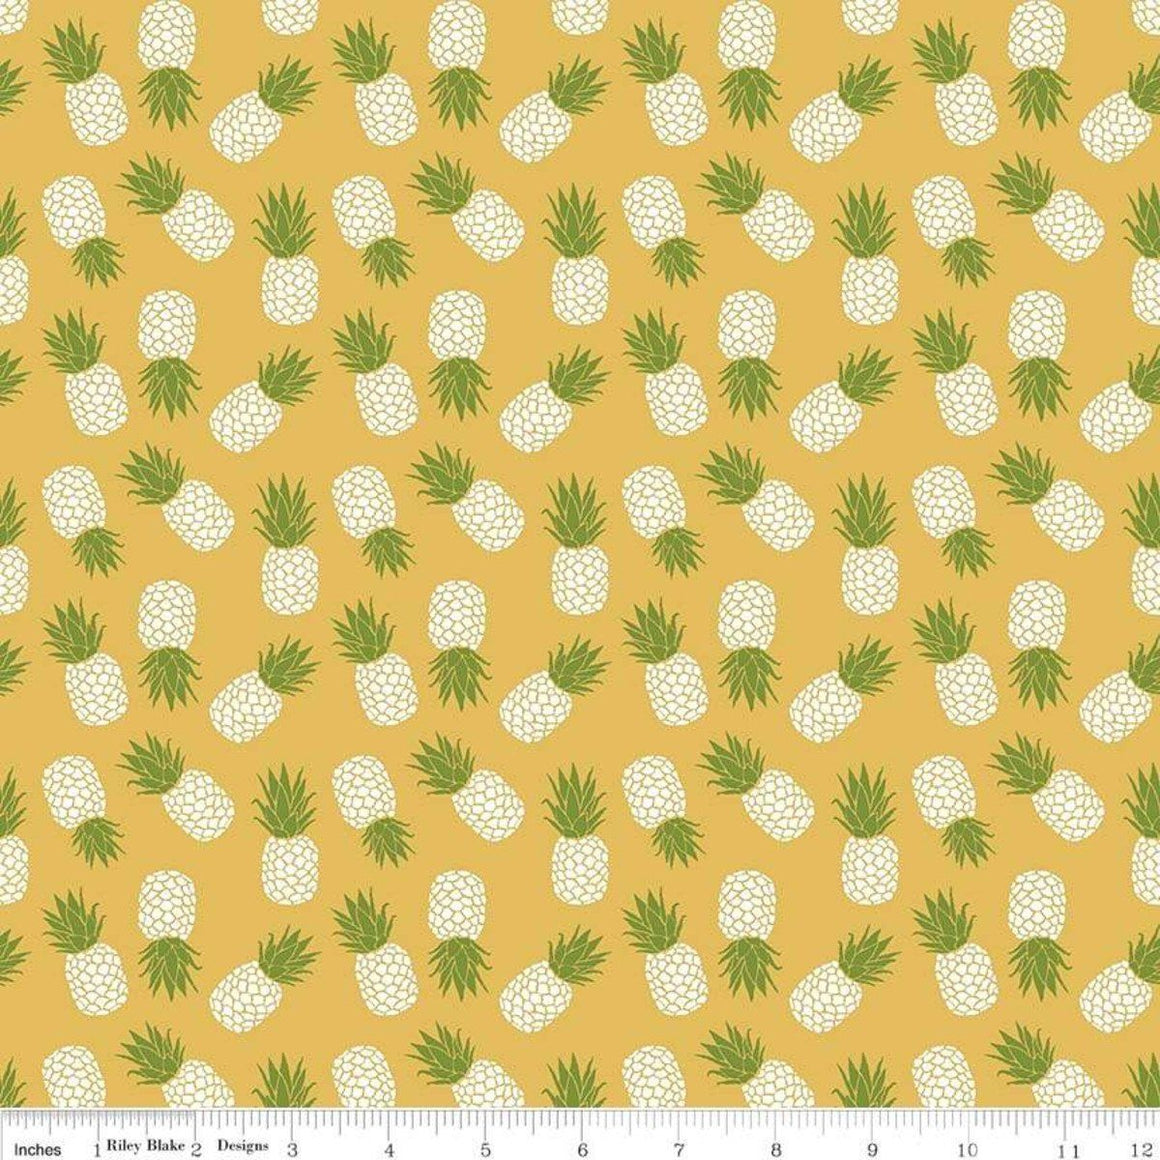 Mustard Yellow Green and White Tossed Havana Pineapple Jersey Knit Fabric, By Patty Young For Riley Blake, 1 Yard - Raspberry Creek Fabrics